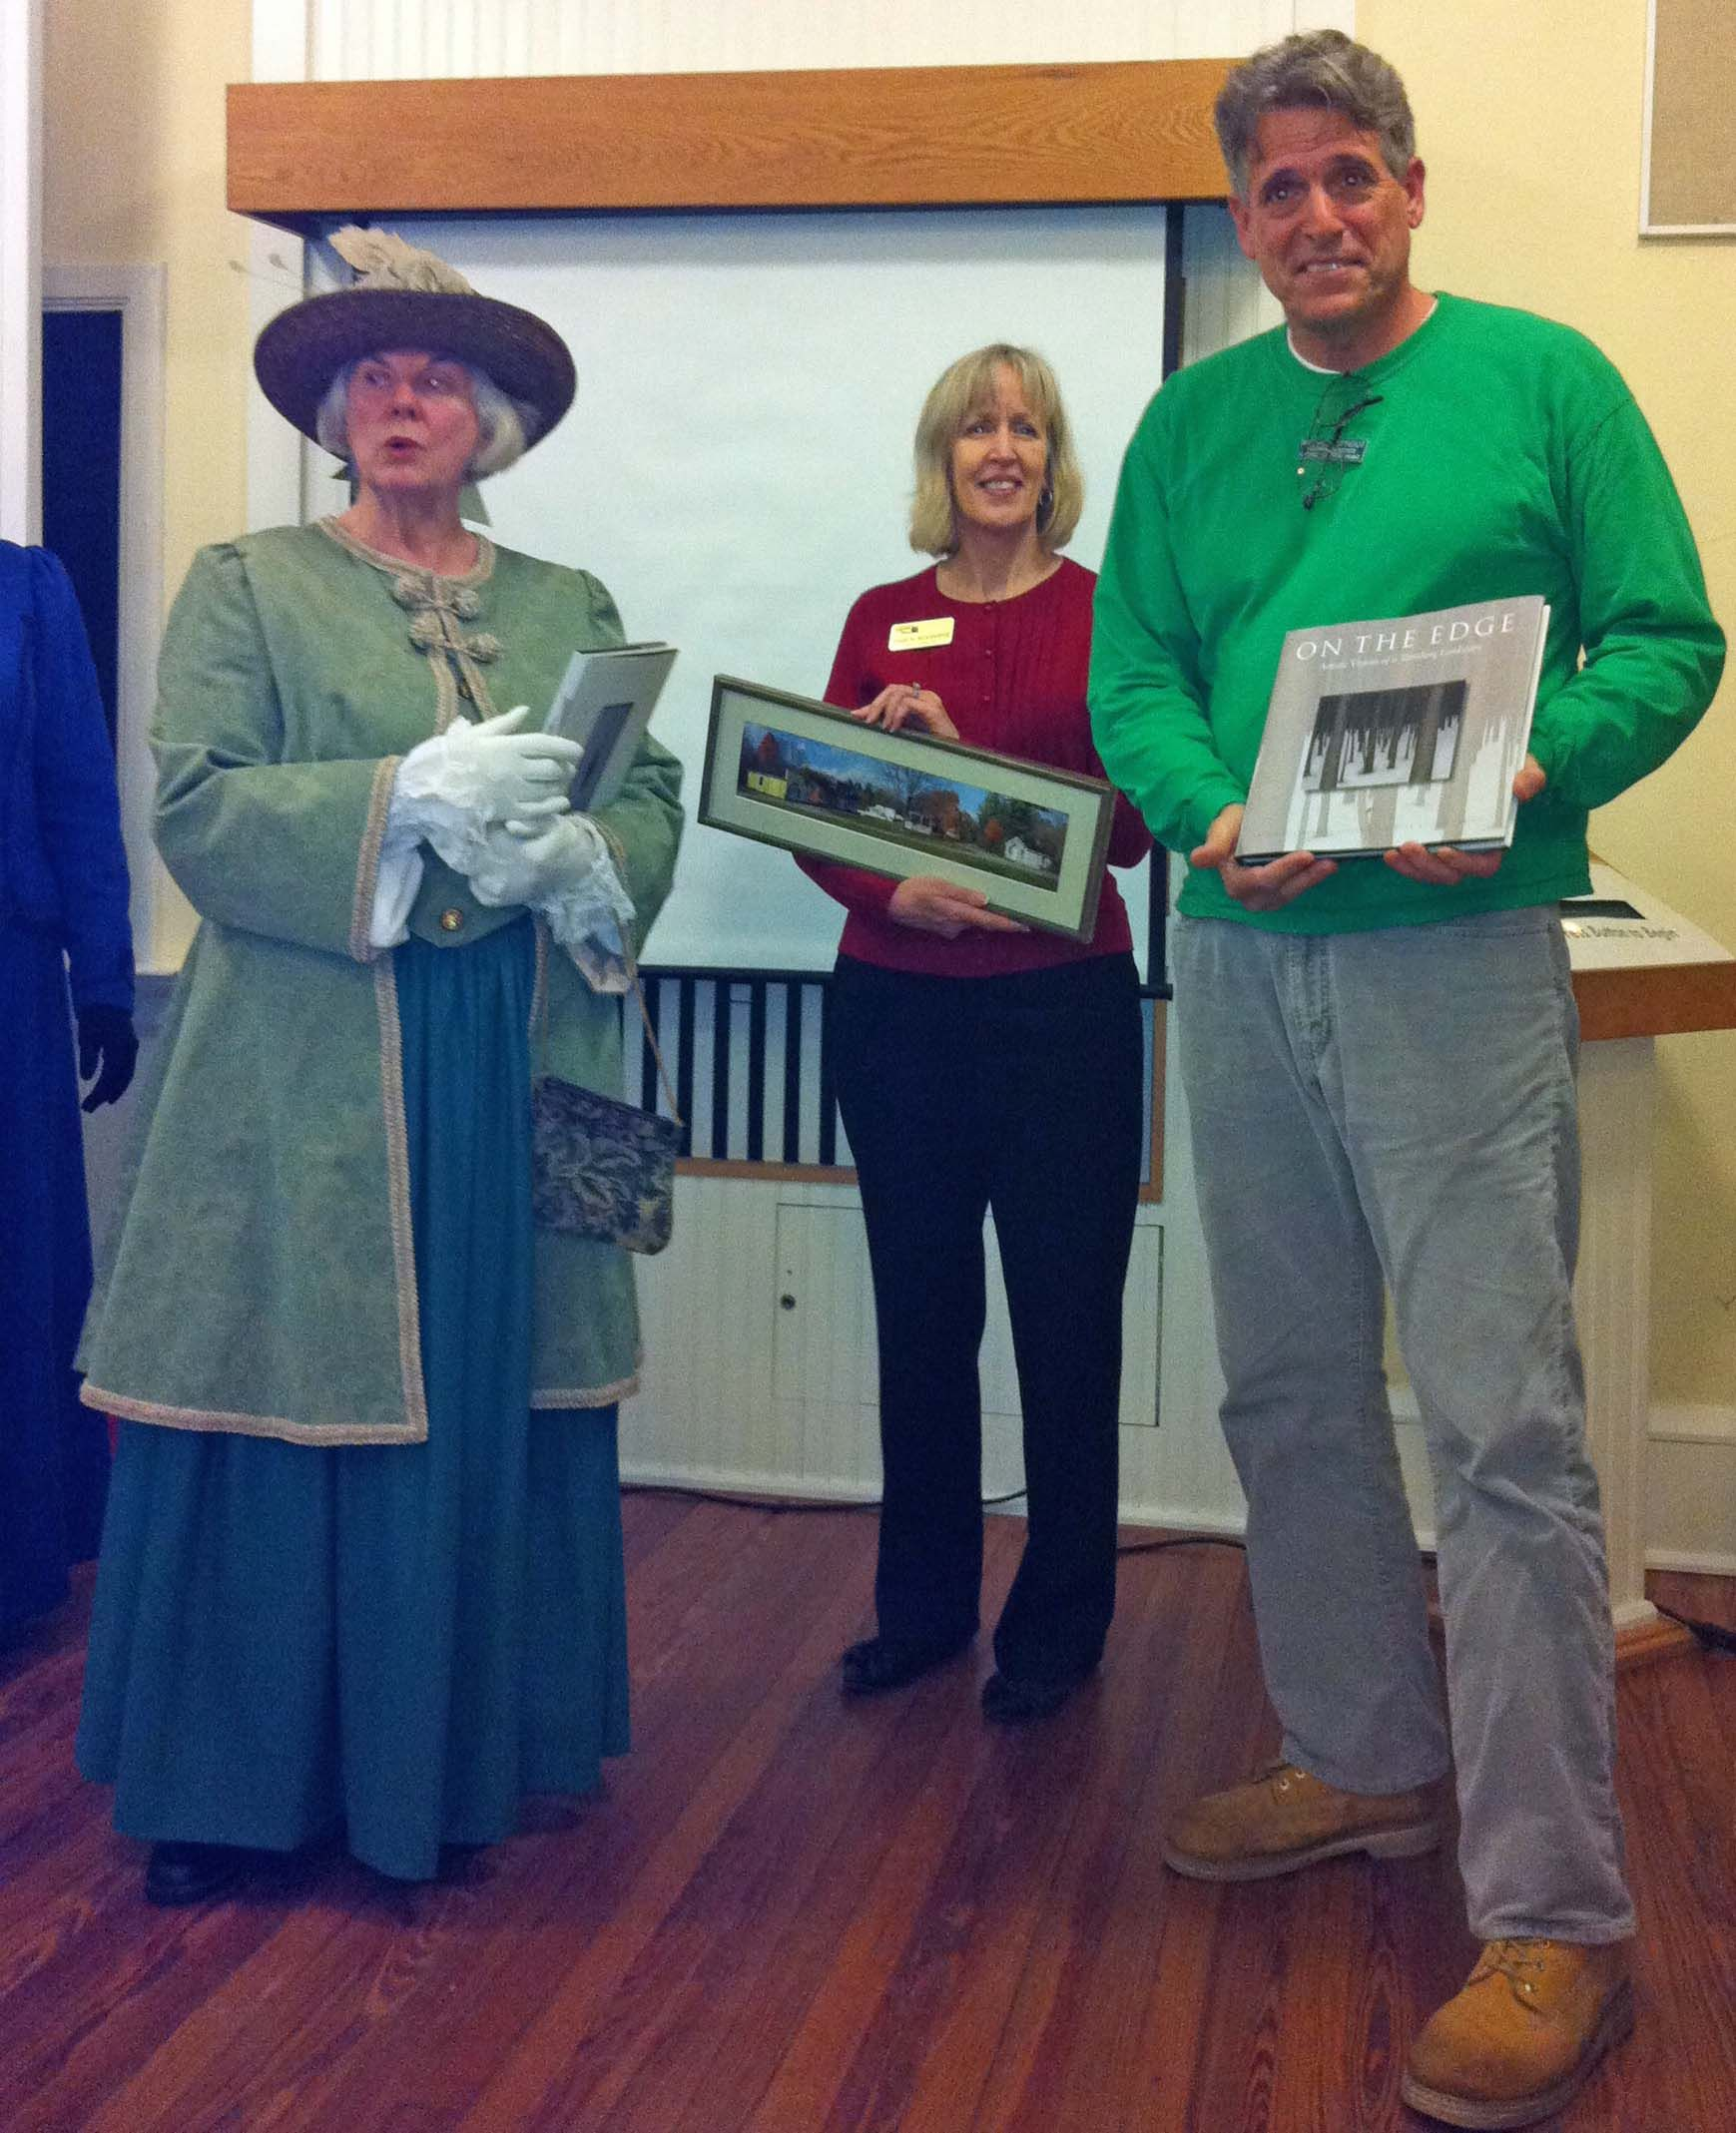 Janet Knowles of the Historic Heritage Village of Hamilton, Ontario exchanges gifts with historical Spanish Point leaders